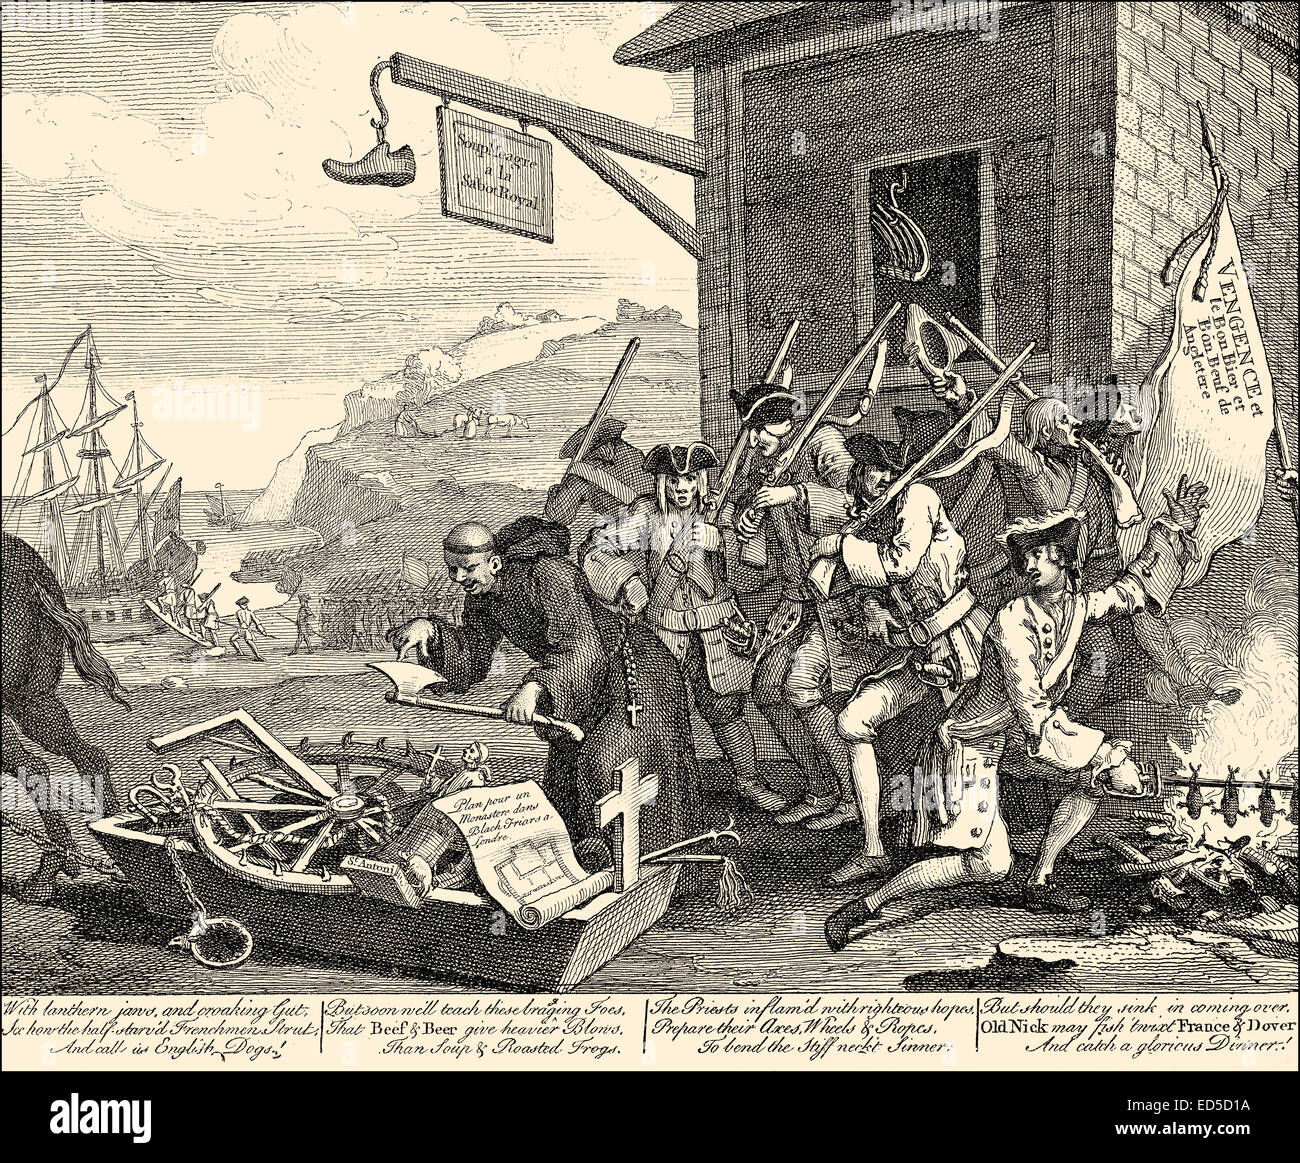 The Invasion, a satire about France, by William Hogarth, 1697 - 1764, an English painter, printmaker, pictorial - Stock Image